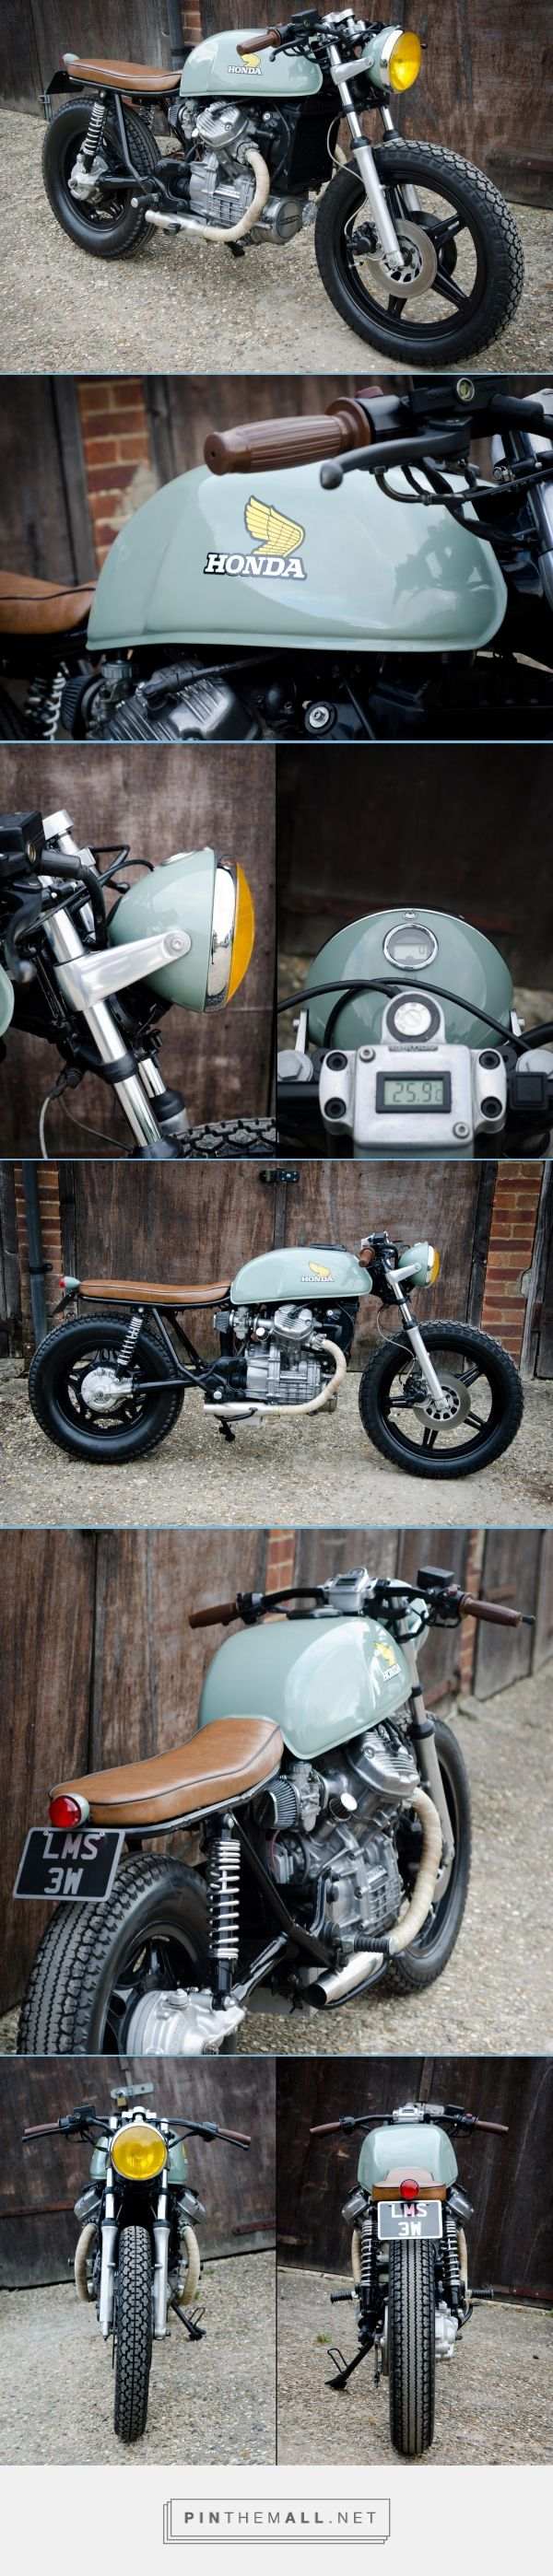 Yard Built Honda CX500 by Richard (London) [CFCM] *OH DEAR LORD ITS BEAUTIFUL. My dream bike for sure... with some minor mods.*